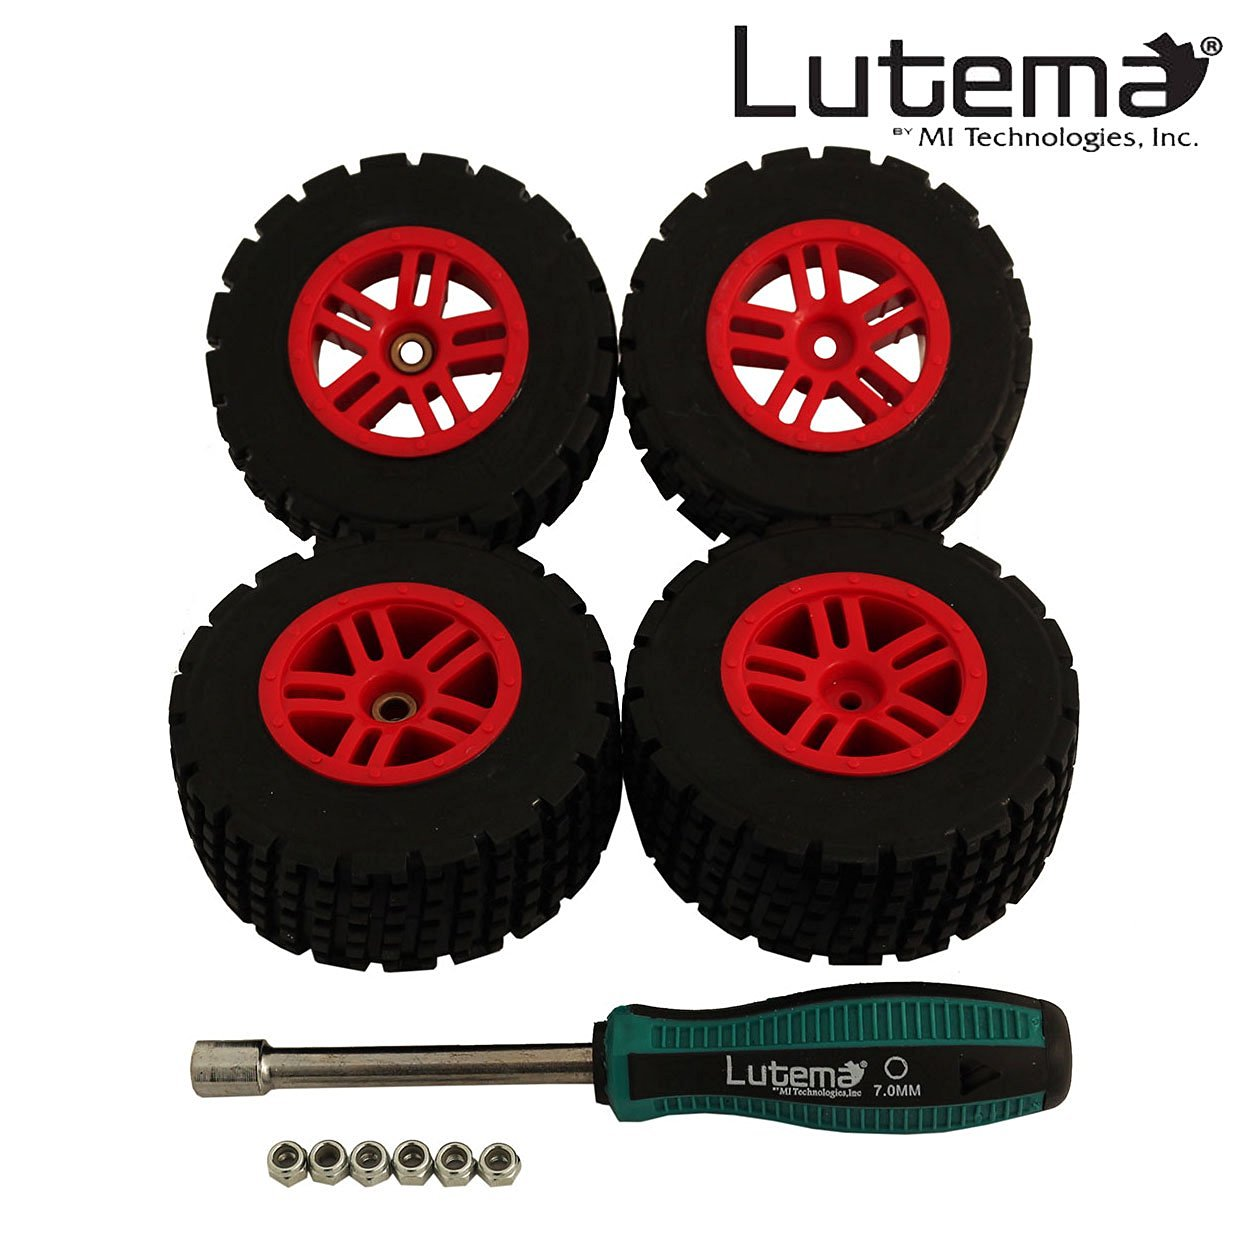 Lutema Hyp-R-Baja 2.4Ghz Baja King Complete Set of Color Wheels With Tires - Red